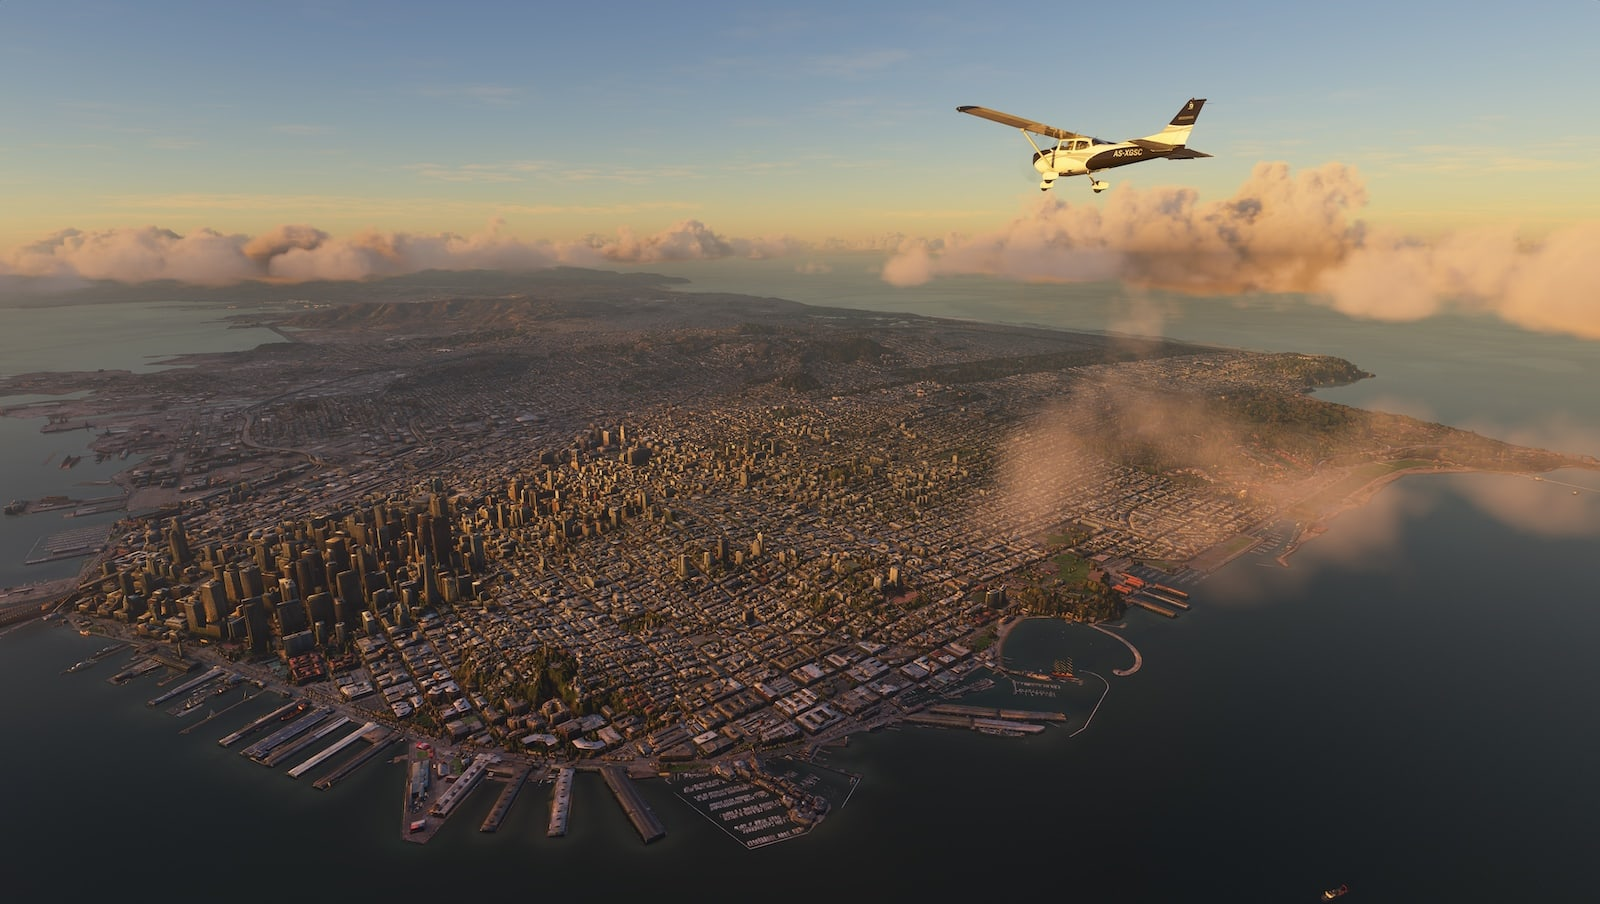 All I want to do is chill and play 'Flight Simulator'